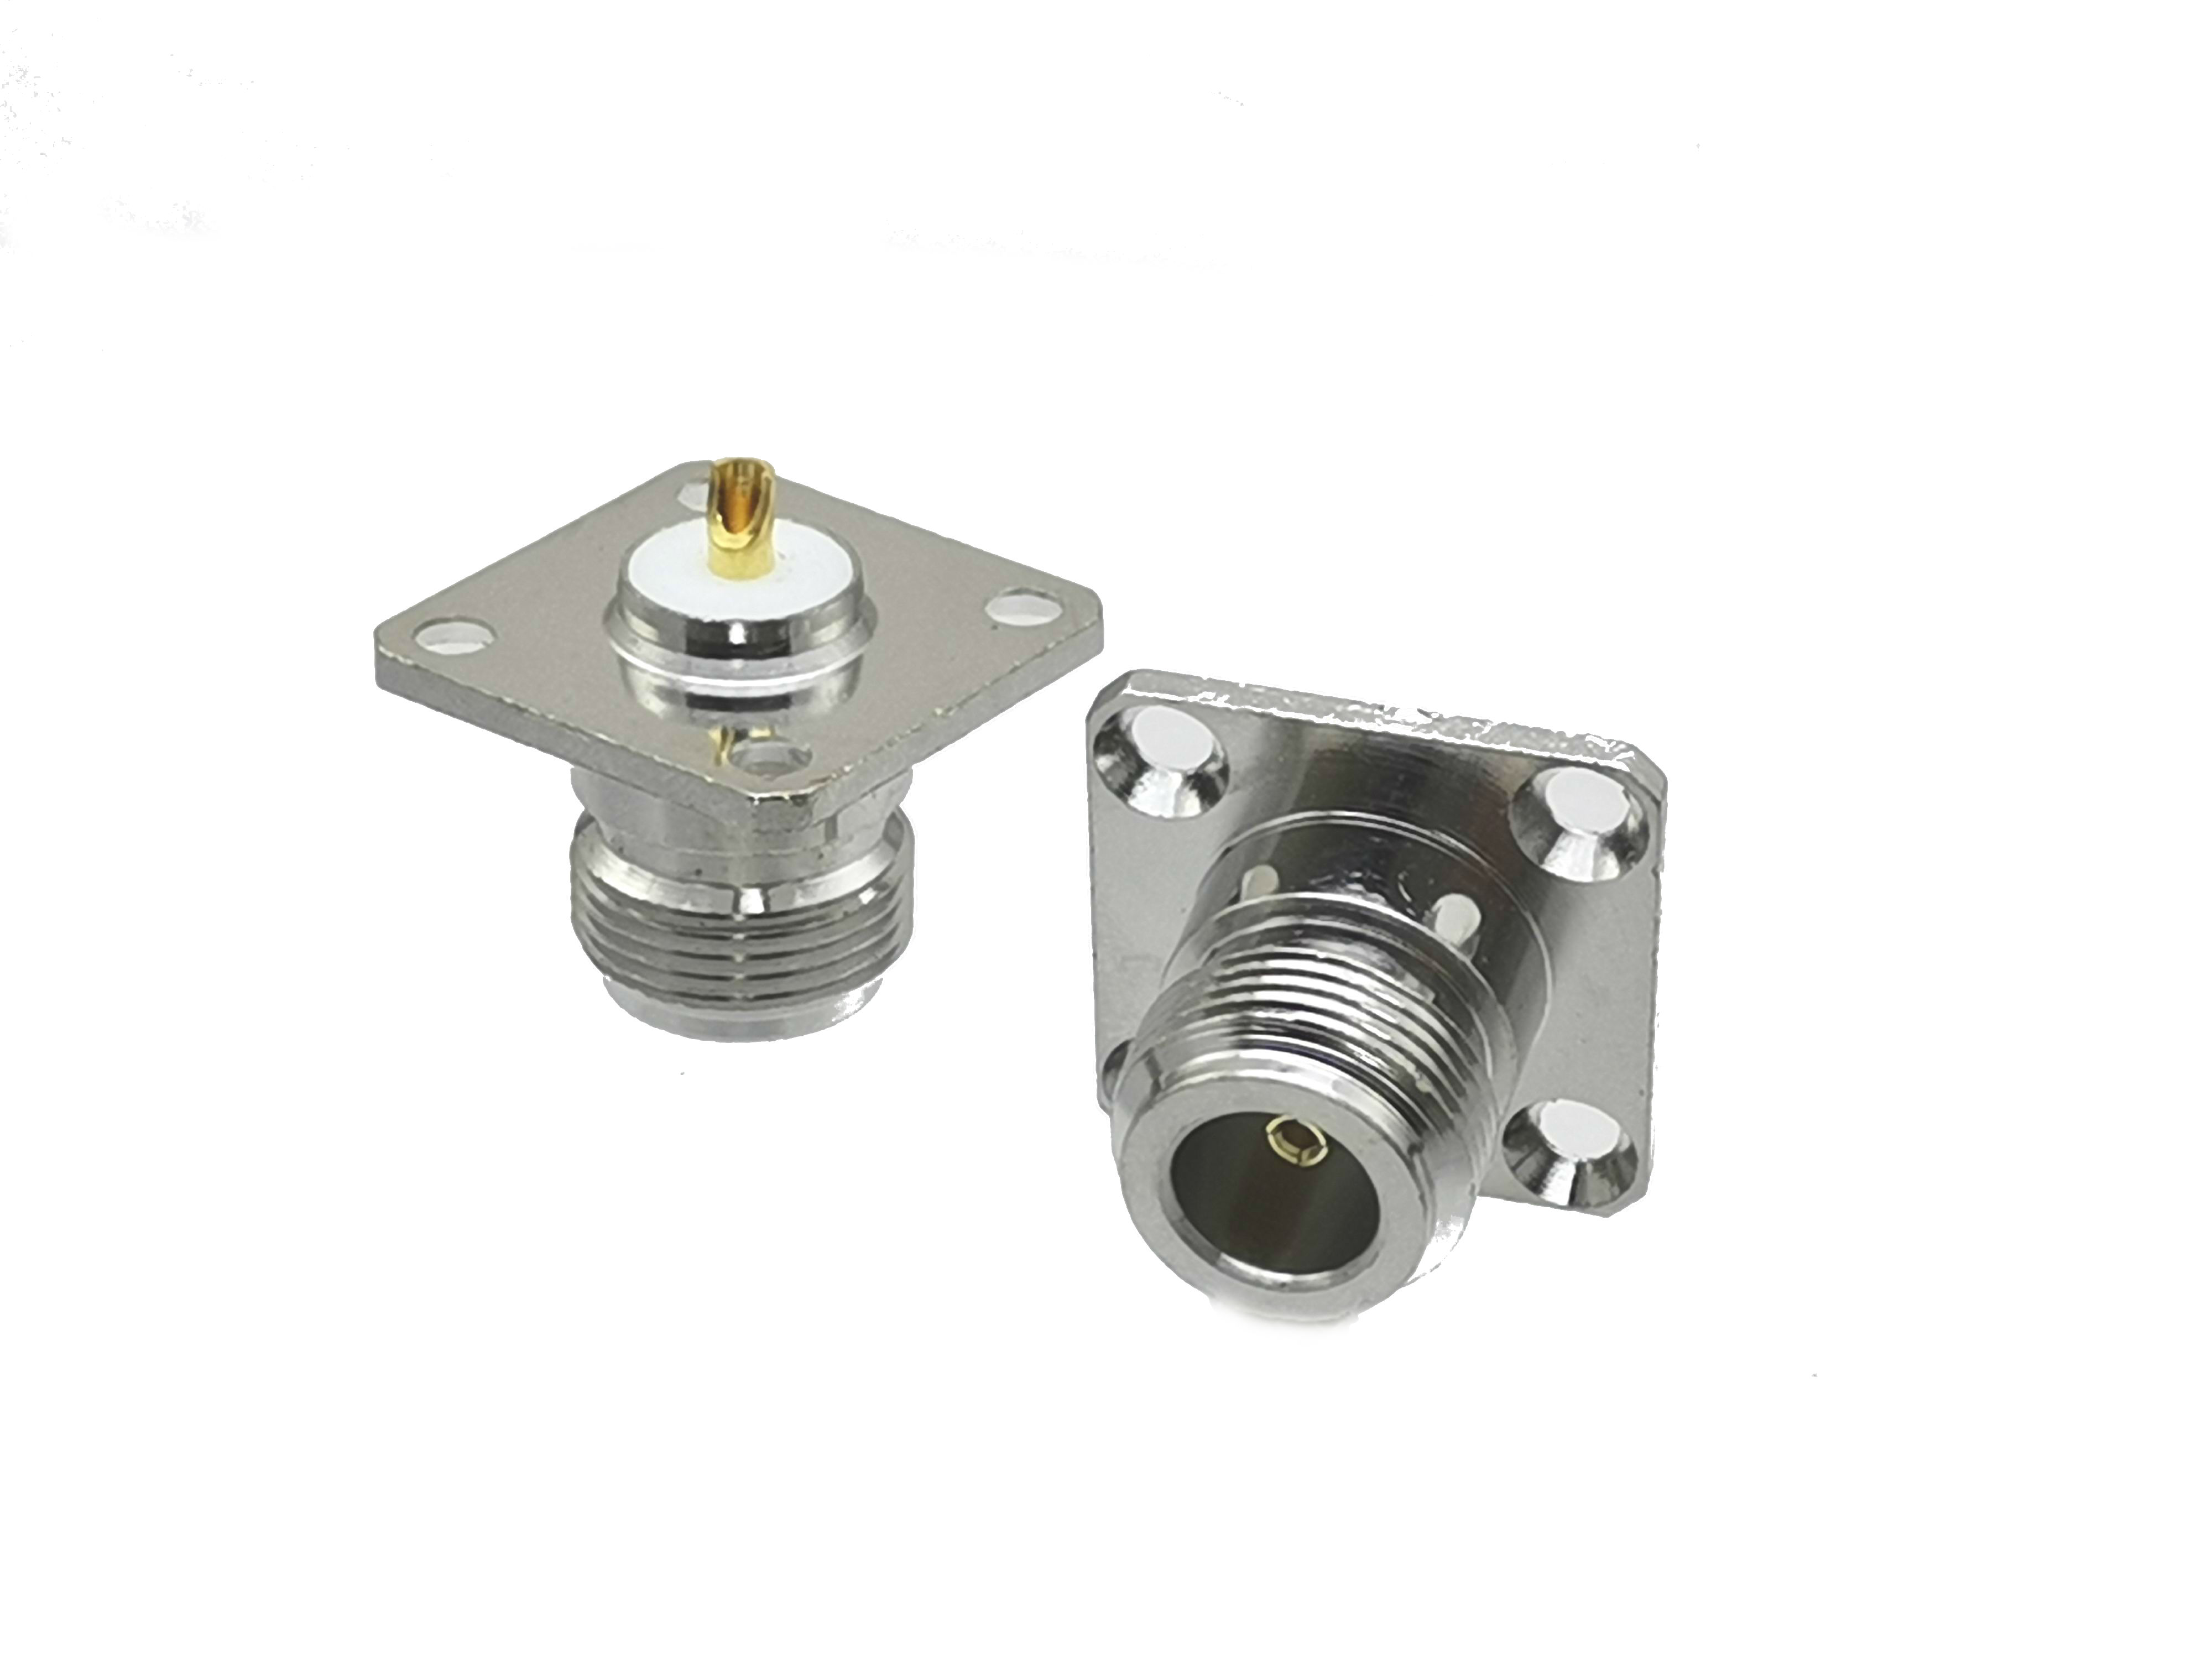 Connector N Female Jack 4-hole 25.4mm Flange Solder Panel Mount Straight RF Coaxial